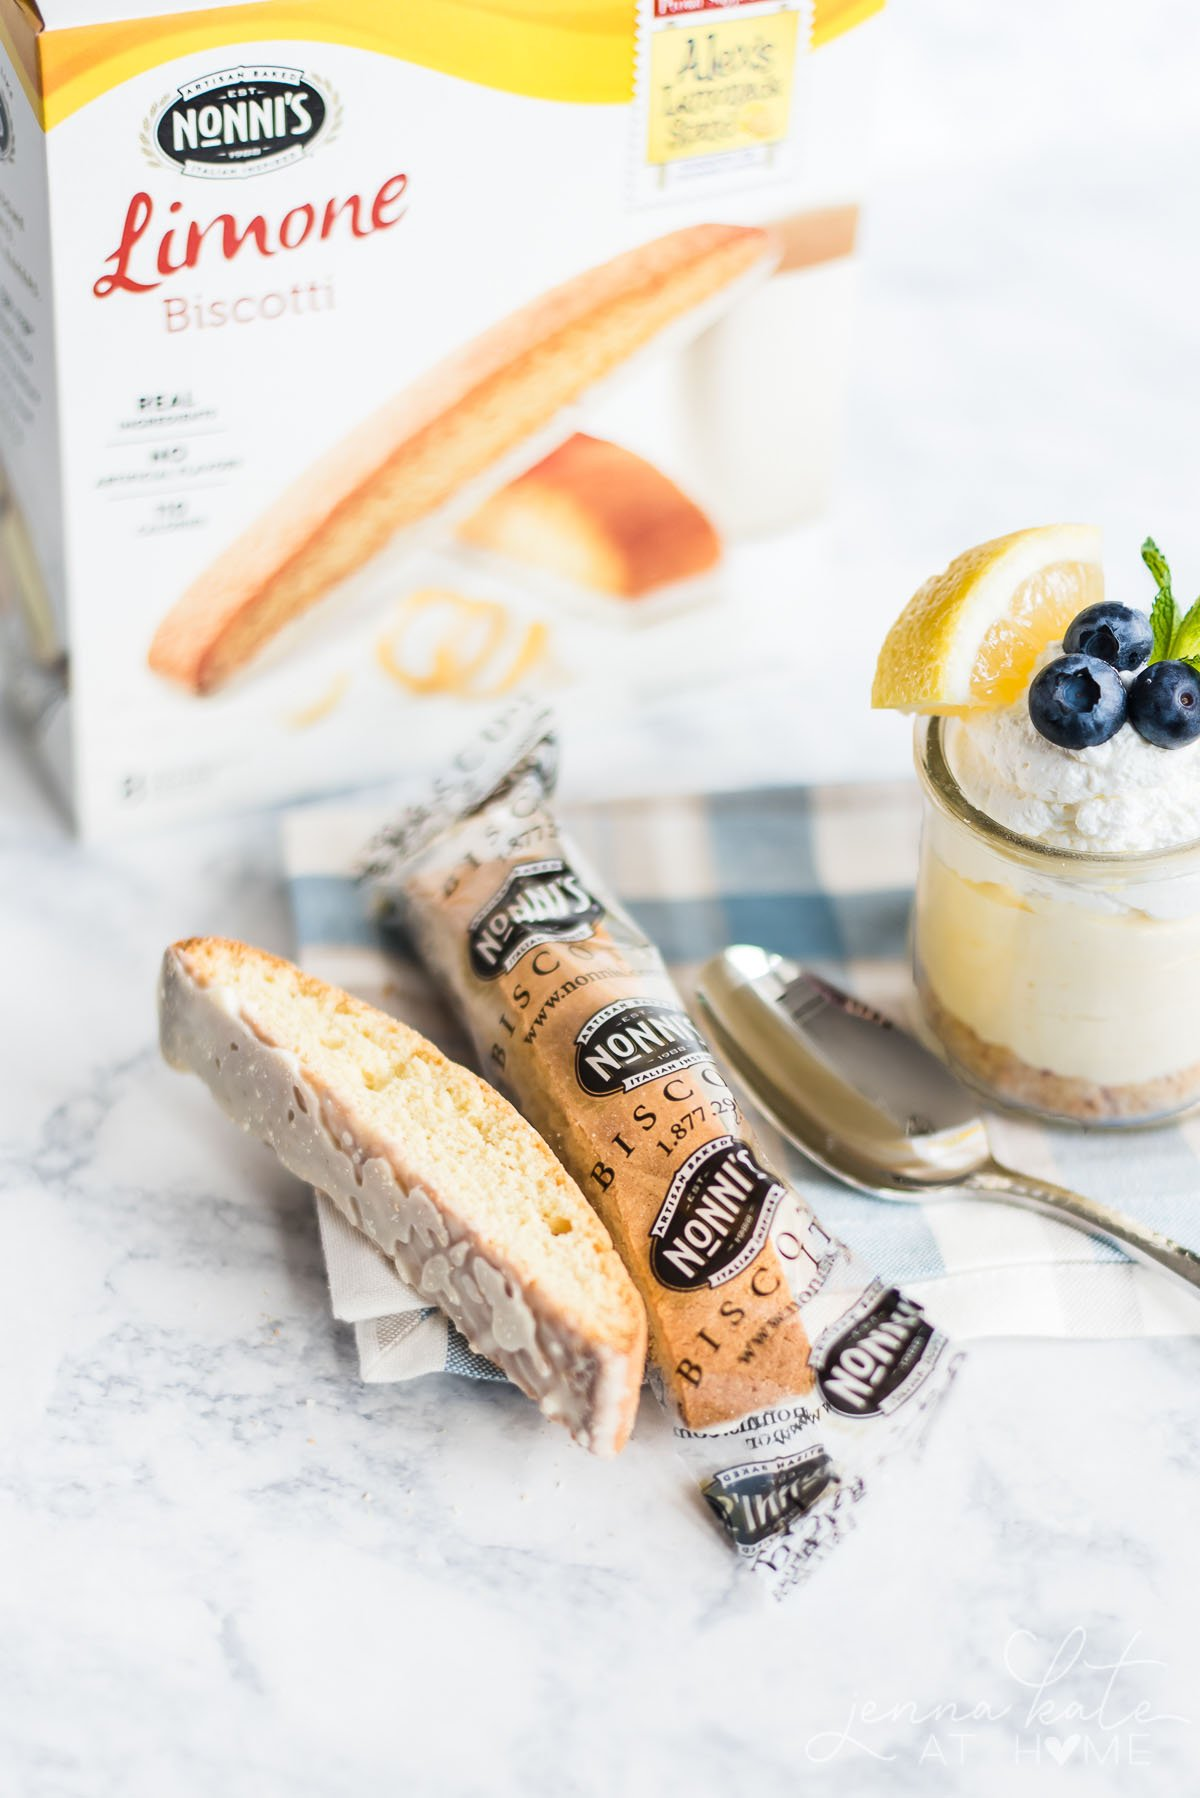 Nonni's Limone Biscotti packaging alongside the Lemon Mousse Cheesecake